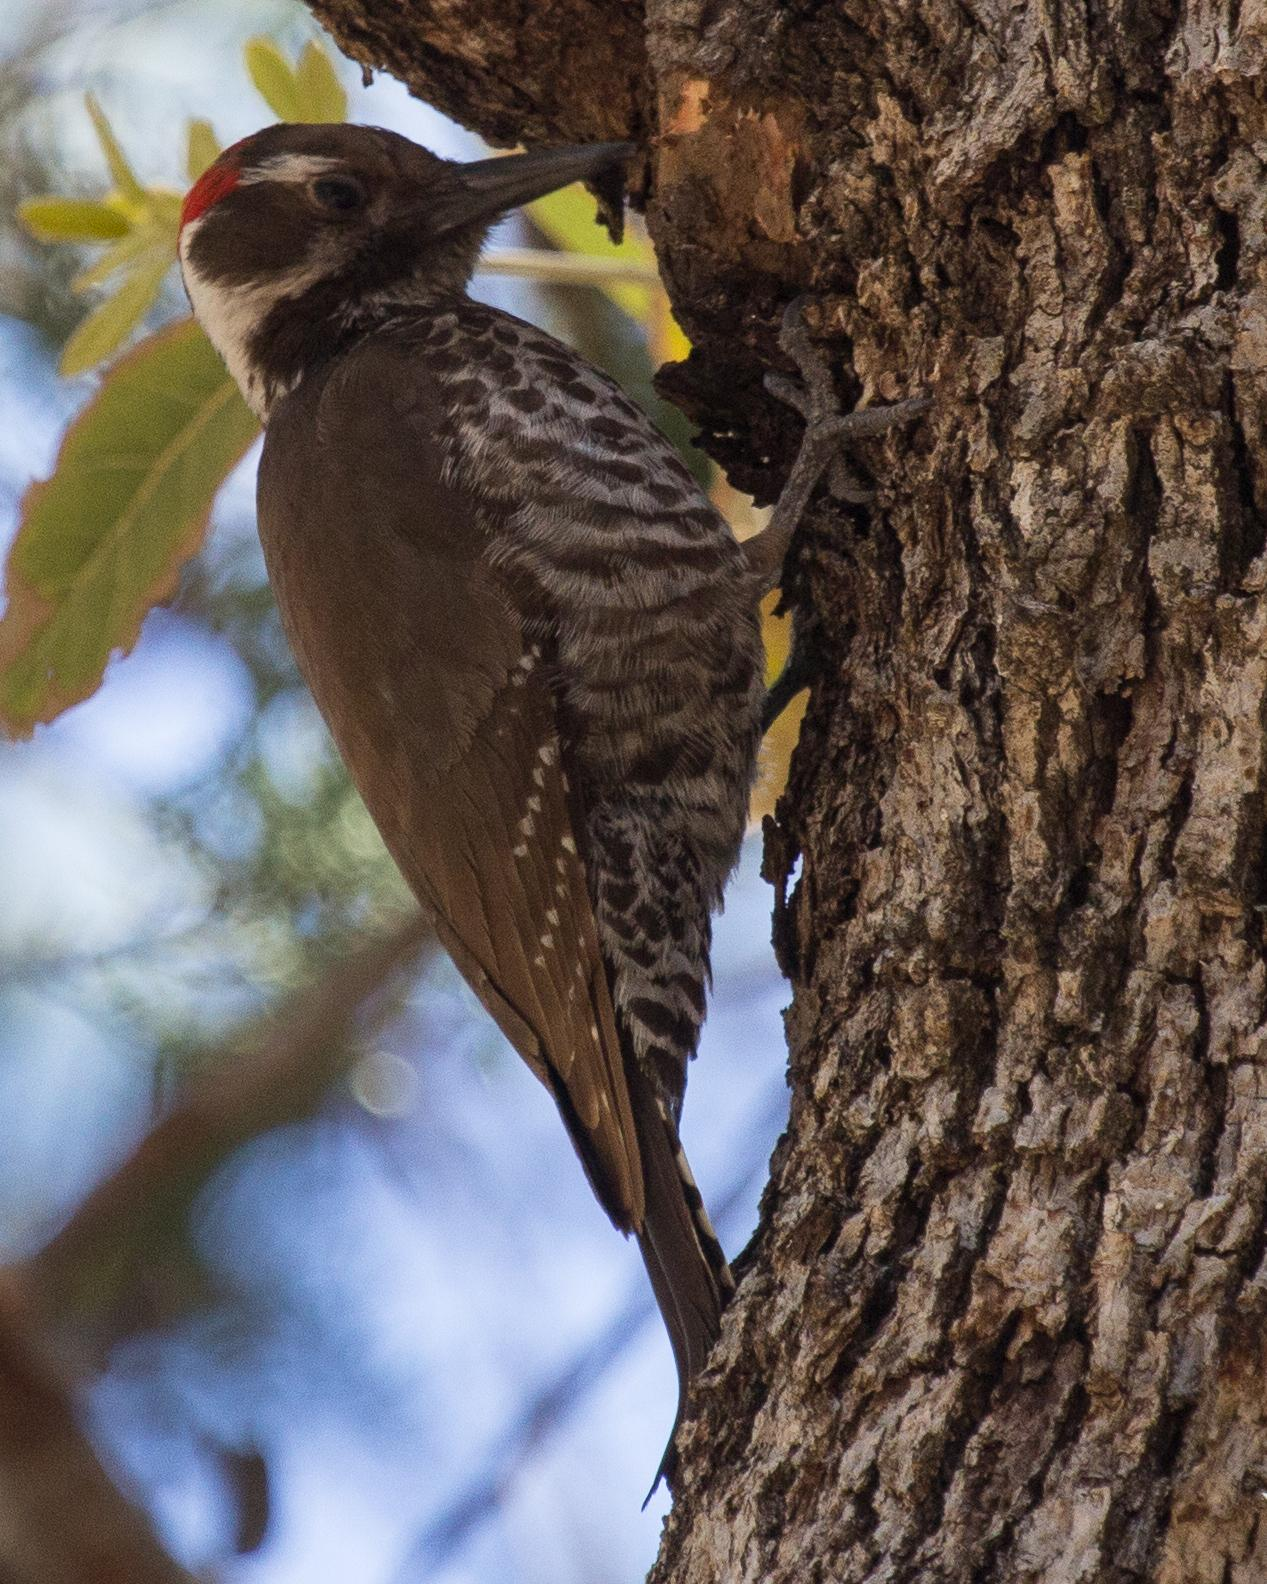 Arizona Woodpecker Photo by Anita Strawn de Ojeda